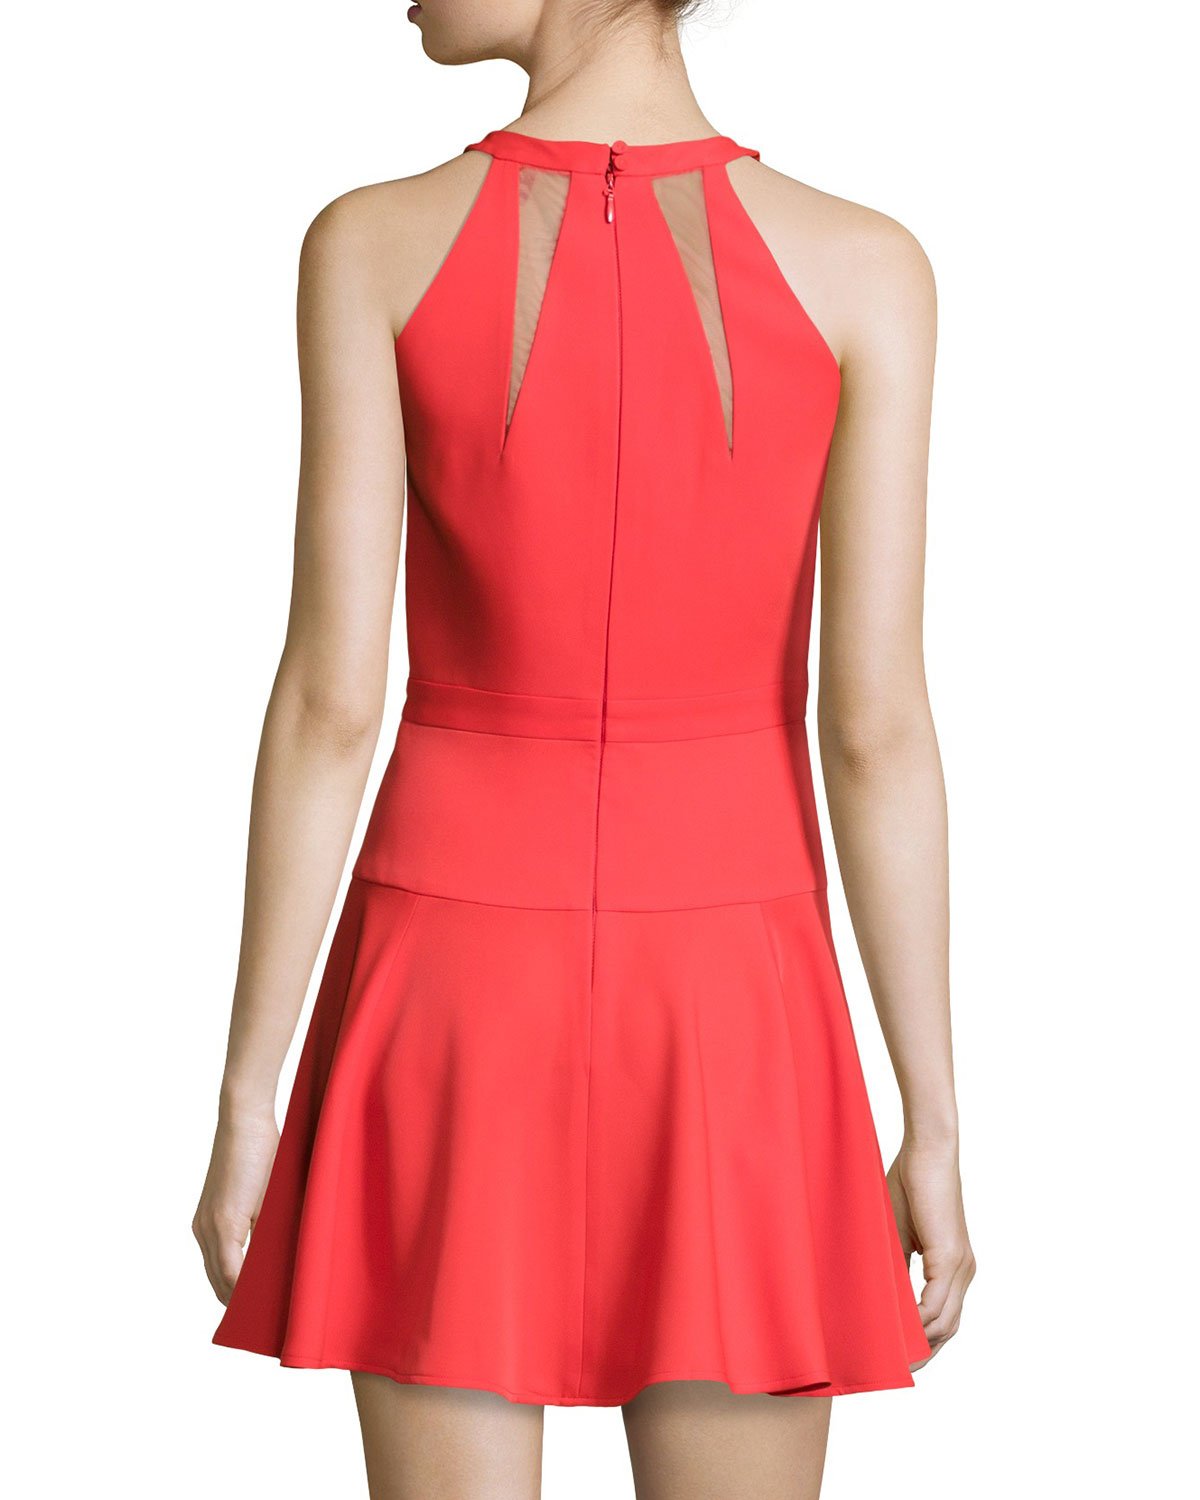 Lyst - Bcbgmaxazria Halter Mesh-inset Fit & Flare Cocktail Dress in Red